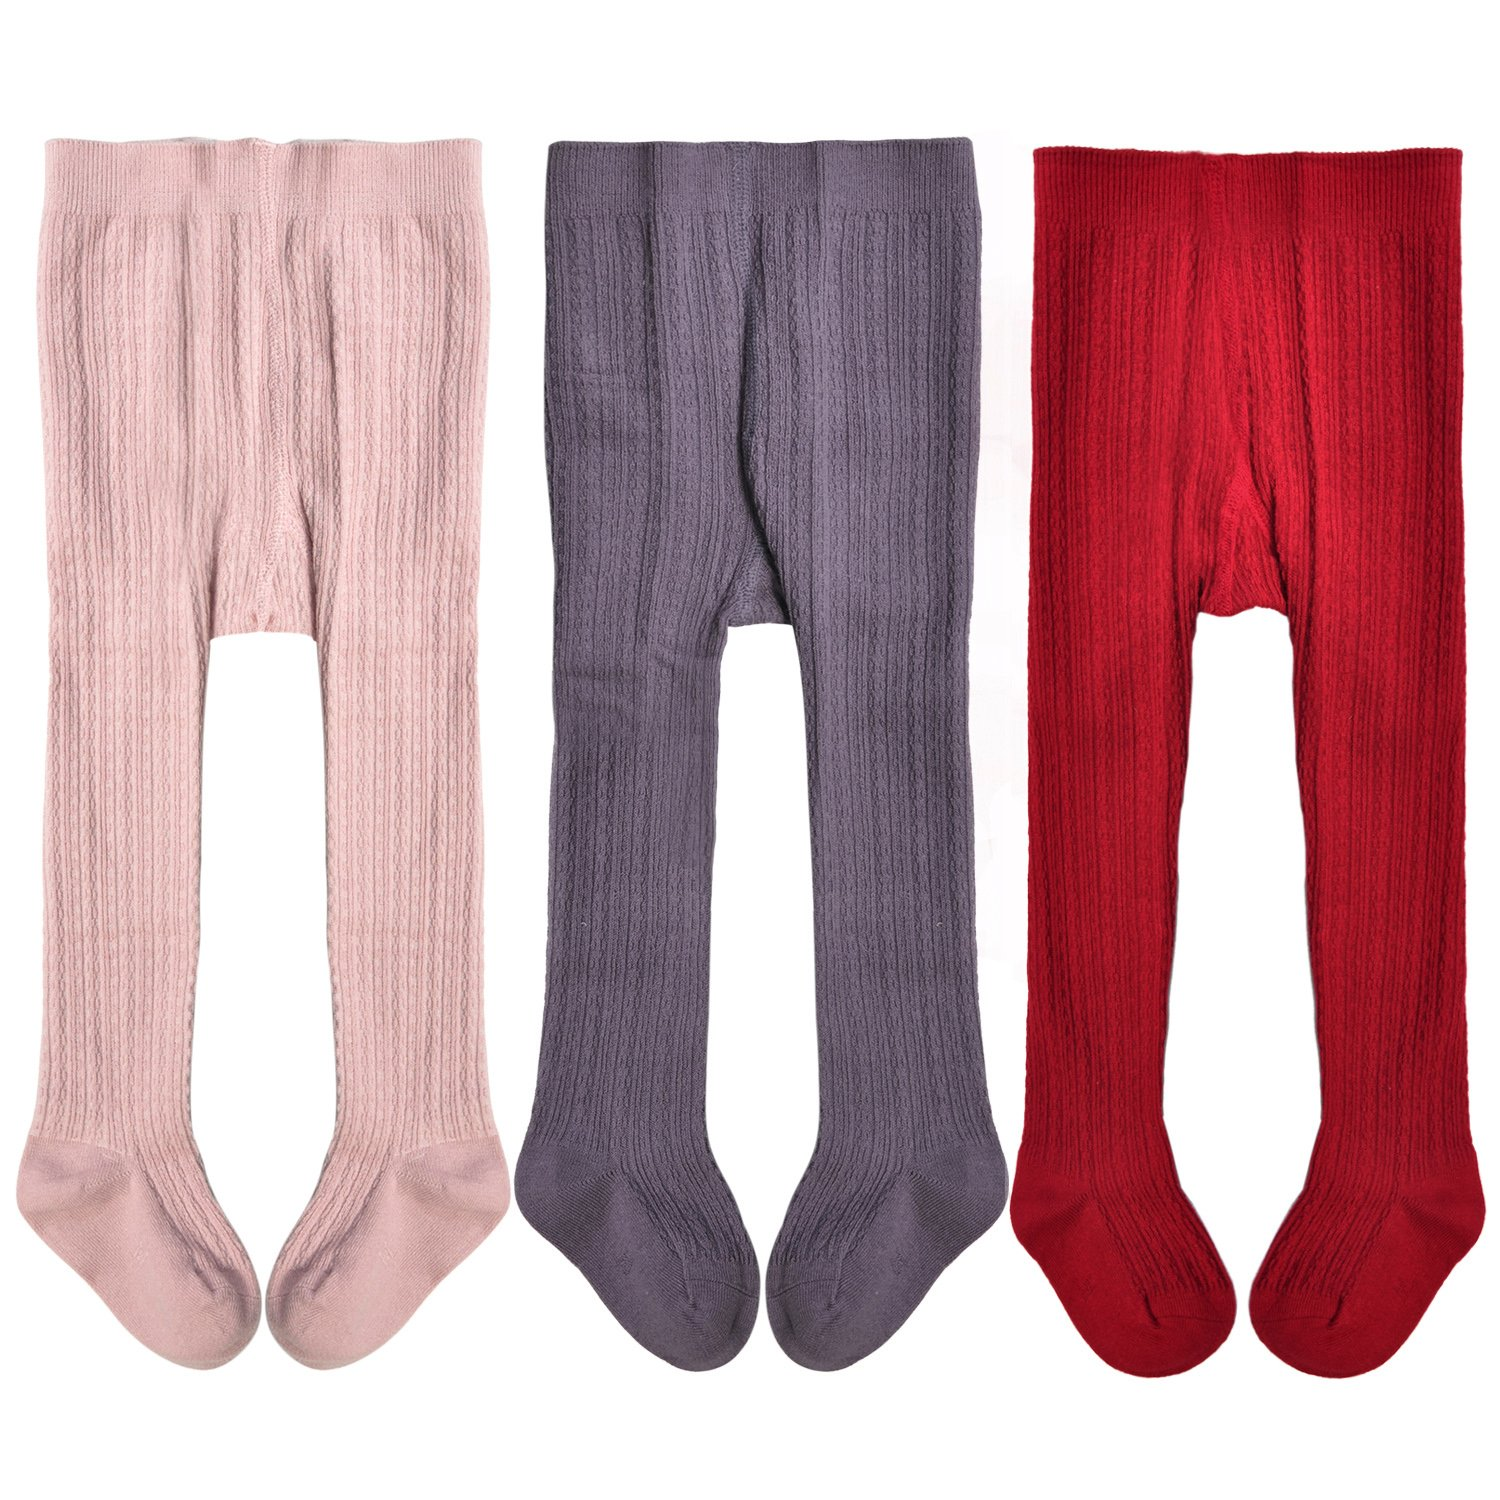 Epeius Little Kids Girls Seamless Cable Knitted Solid Cotton Tights for 2-4 Years,Pink/Purple/Red (Pack of 3)